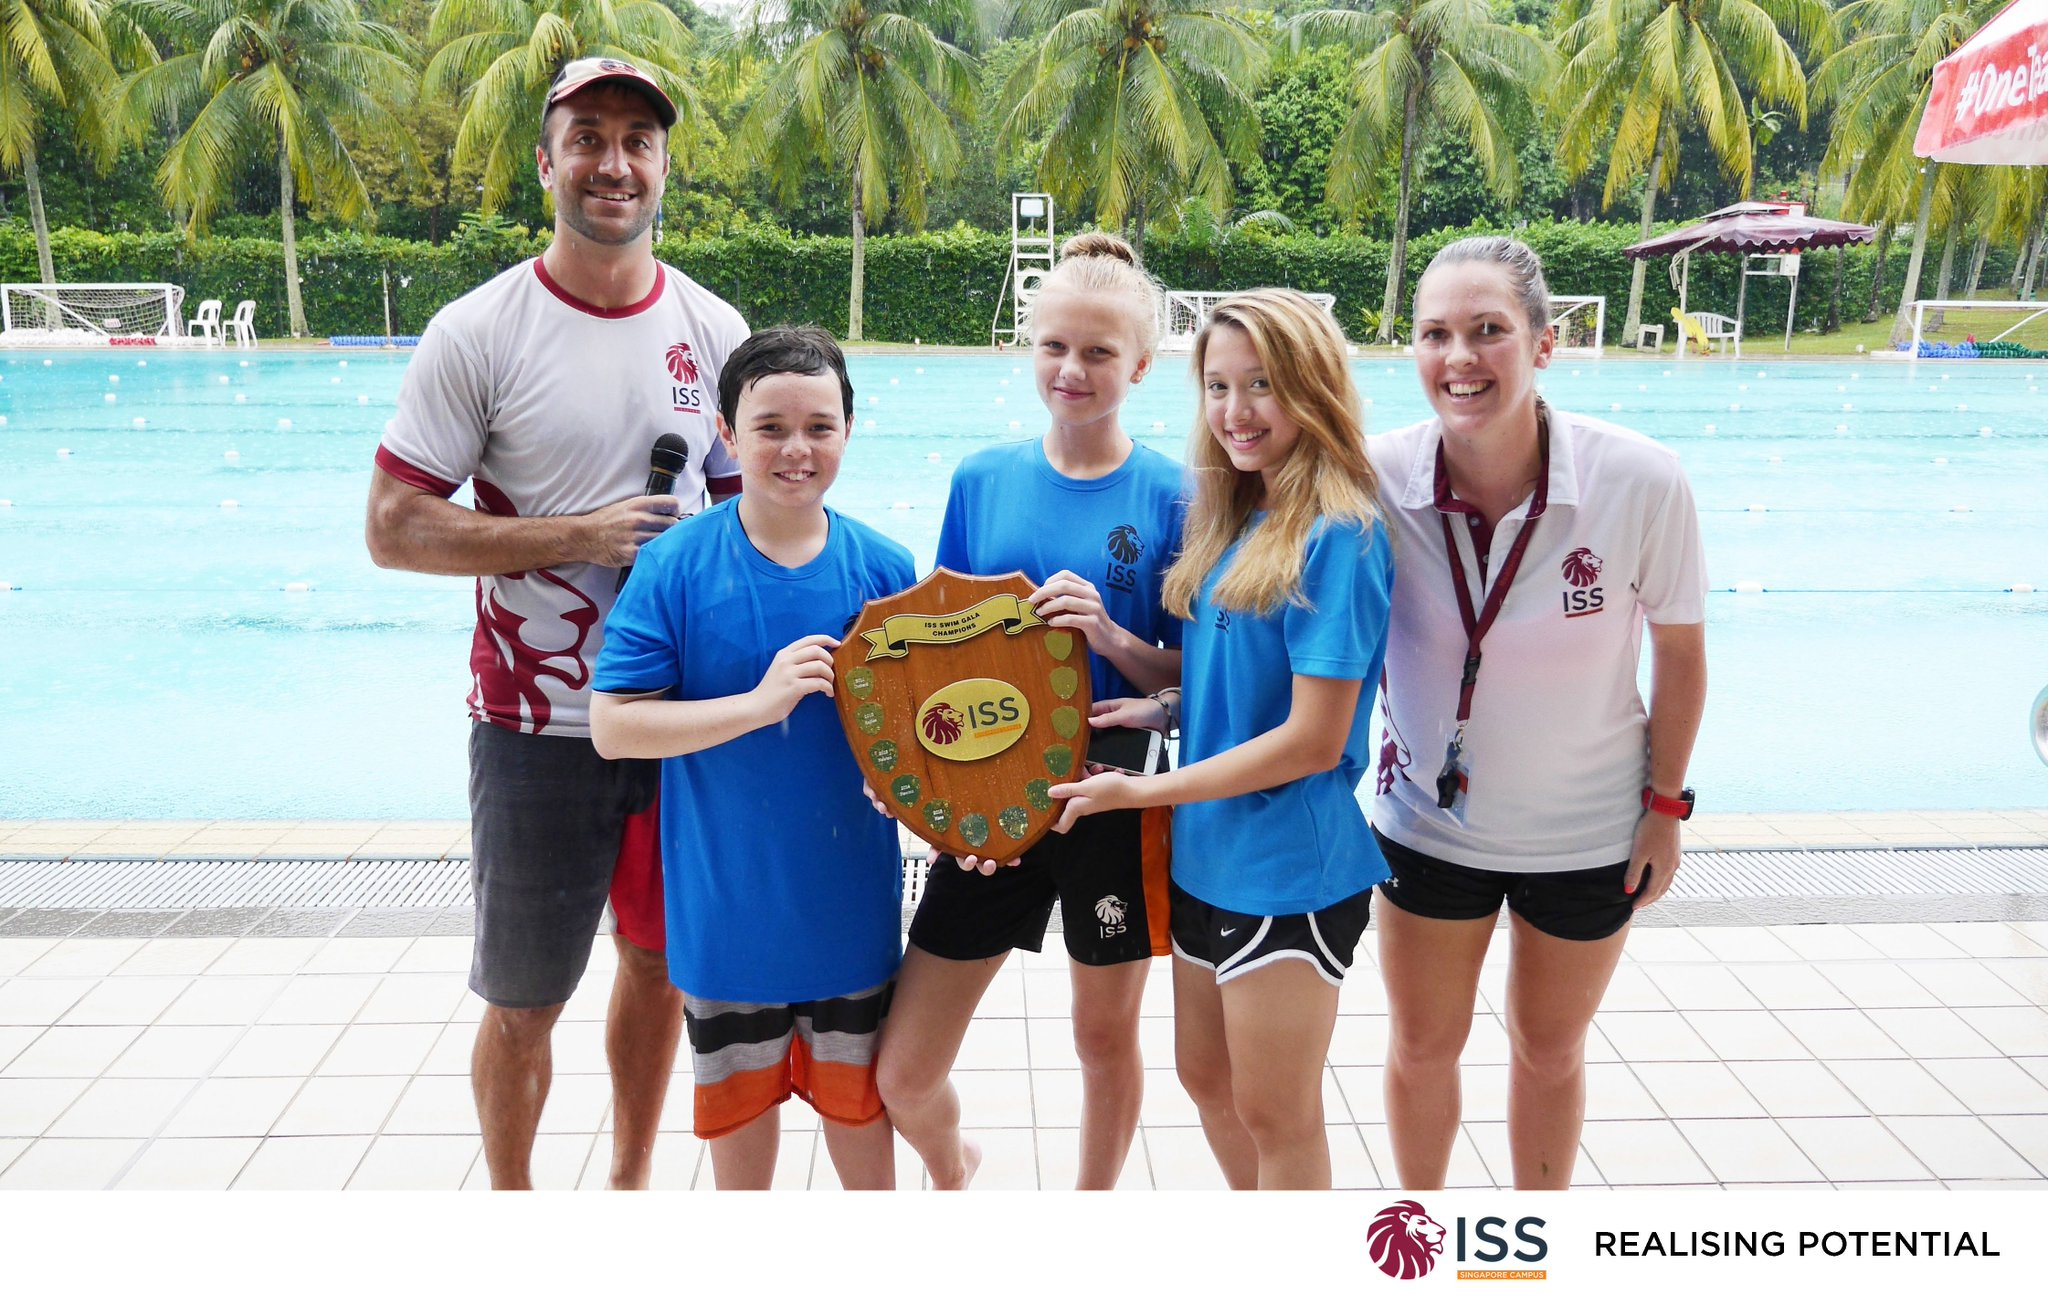 Congratulations to Somerset for taking 1st place at our MYP Swim Gala today! #isspride https://t.co/bteBn1kuCc